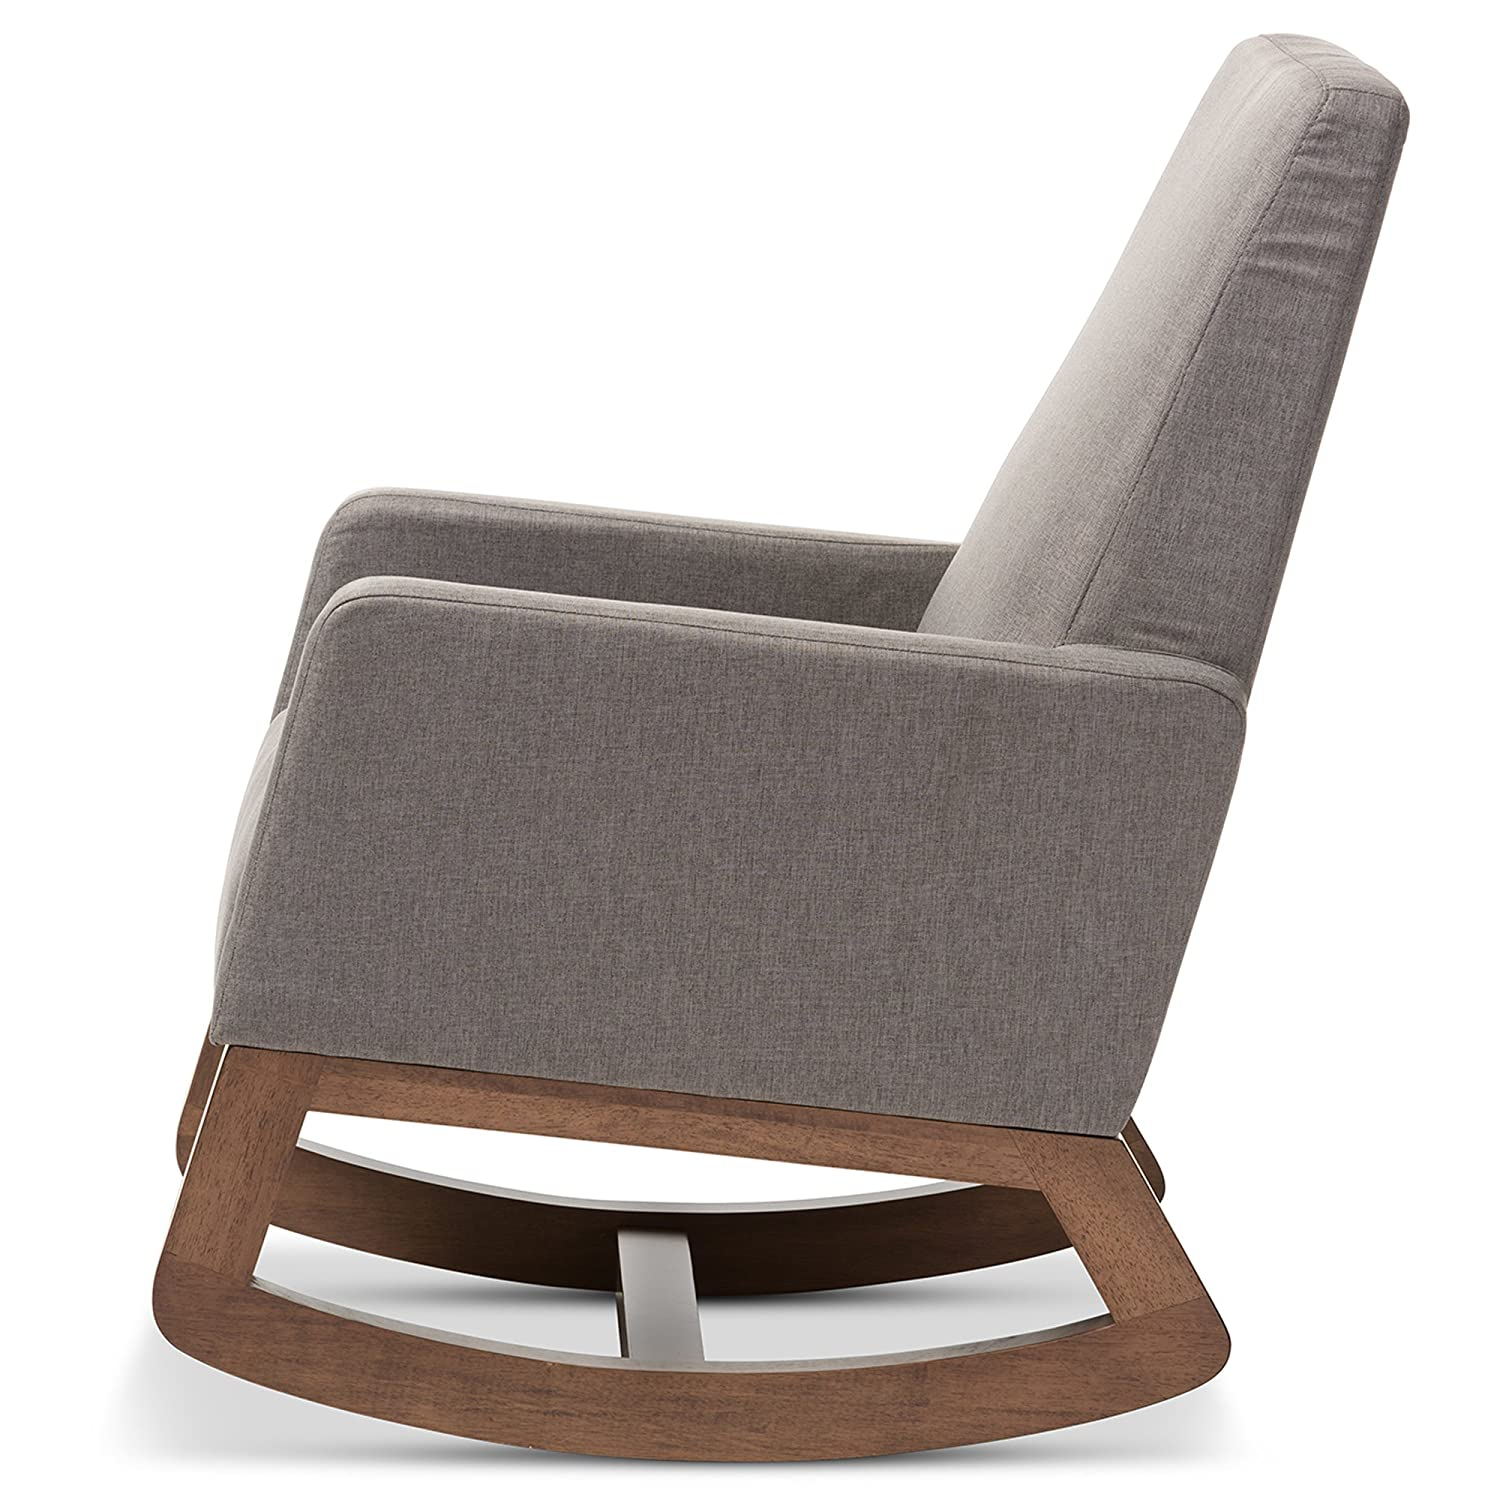 fixed trend for style nursery stunning pict ideas furniture rocking chair modern of and upholstered